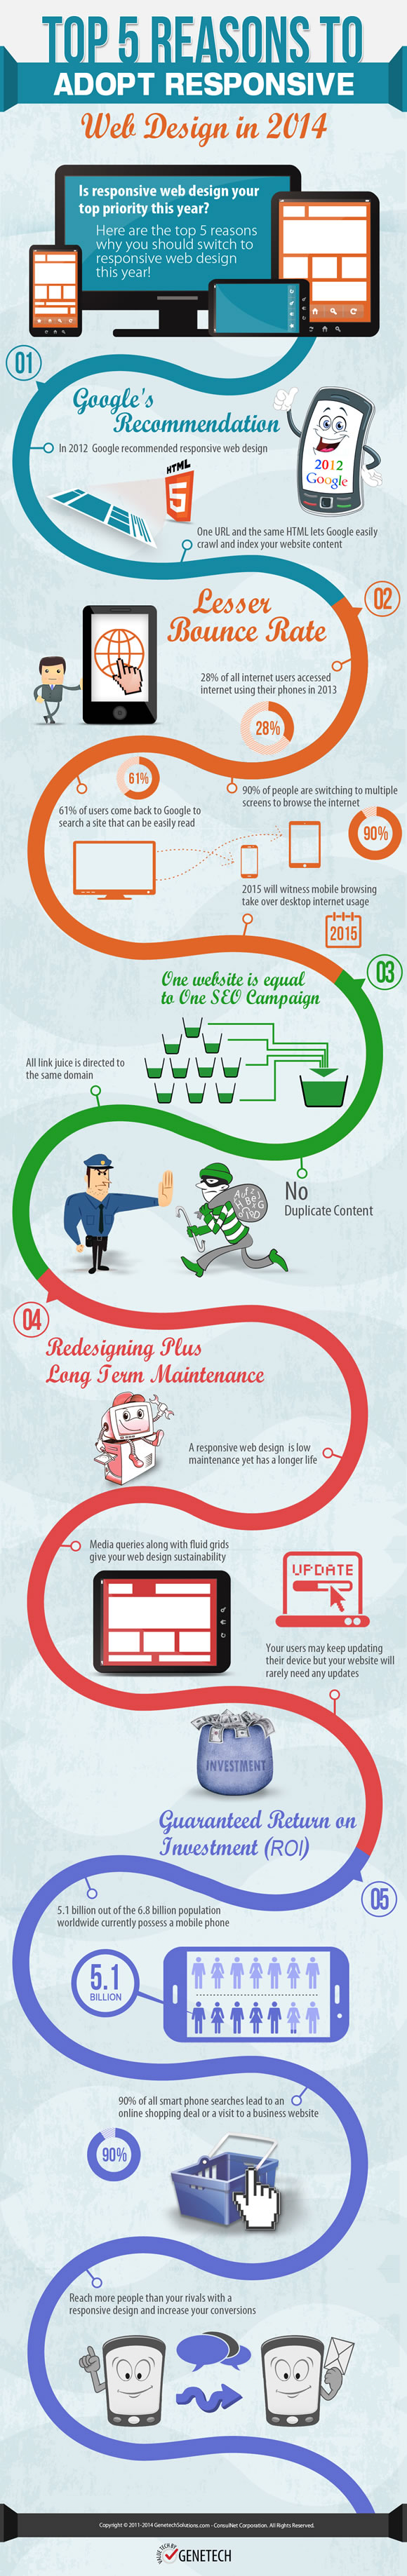 Infographic - Top 5 Reasons For Using Responsive Web Design